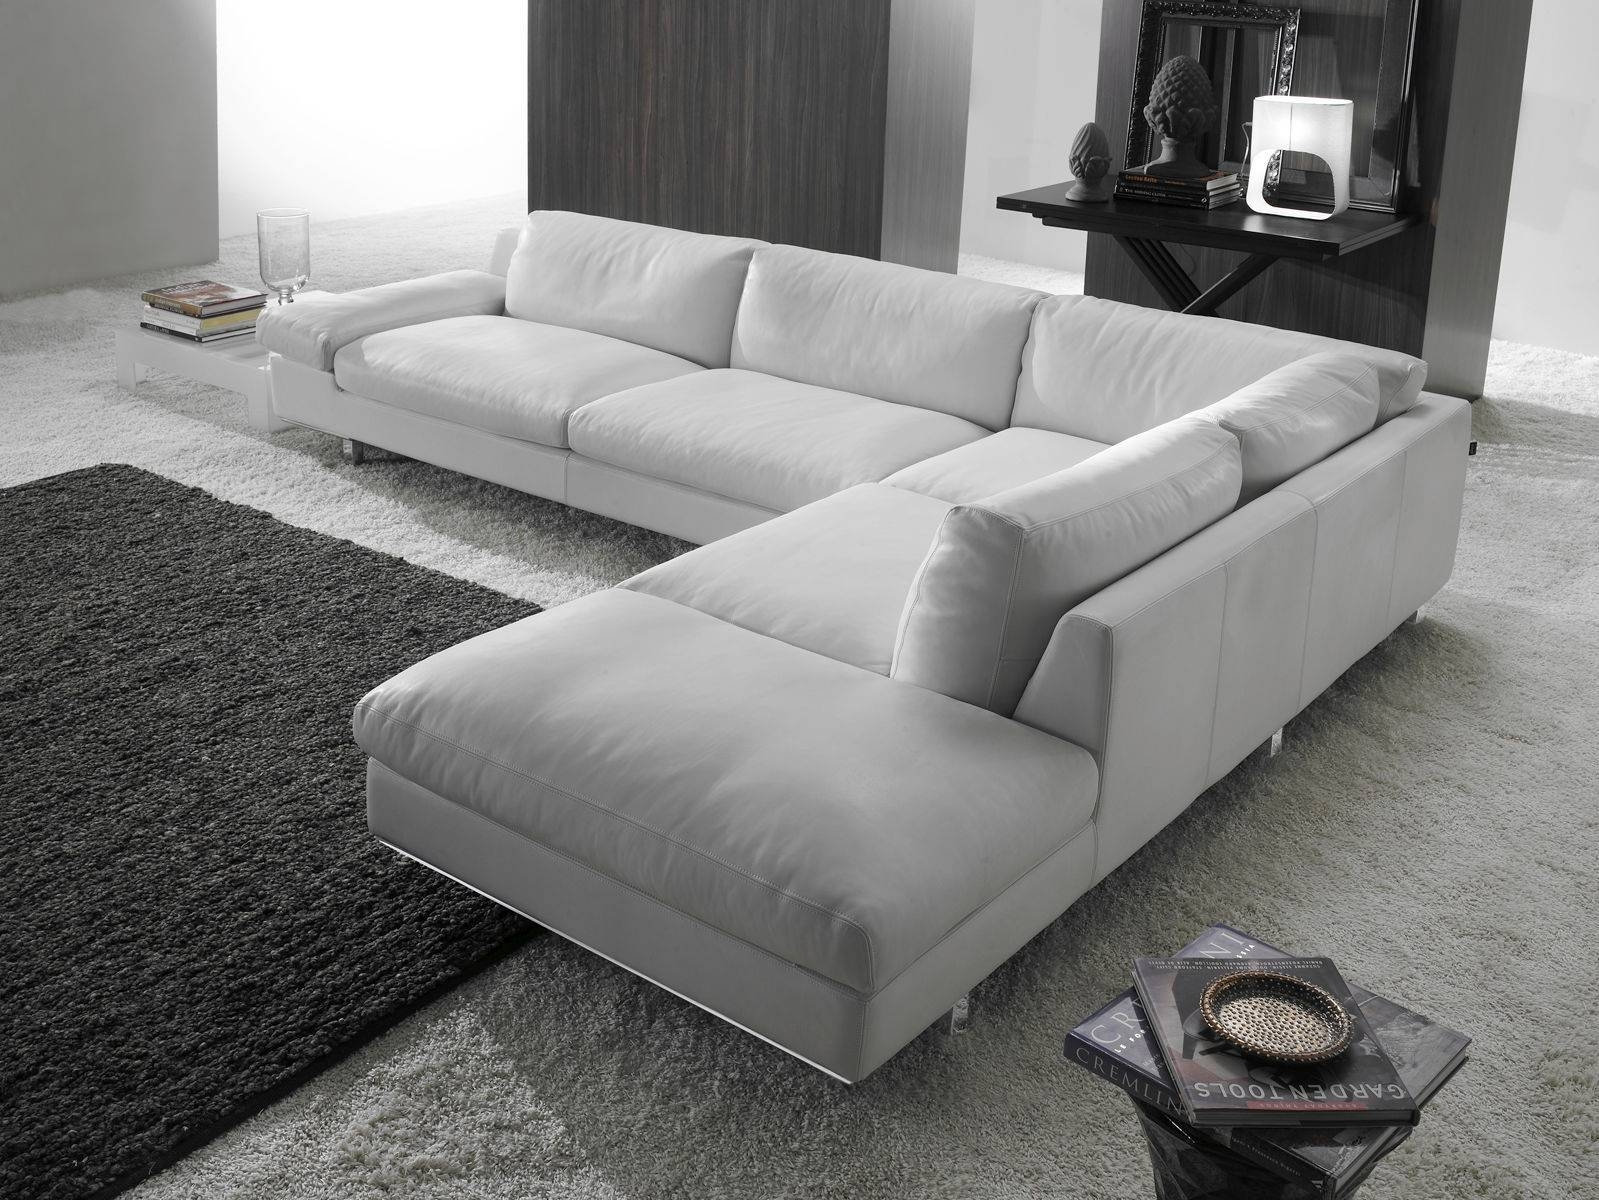 Corner Sofa / Contemporary / Leather / 4-Seater - Paranà inside 4 Seater Couch (Image 11 of 30)